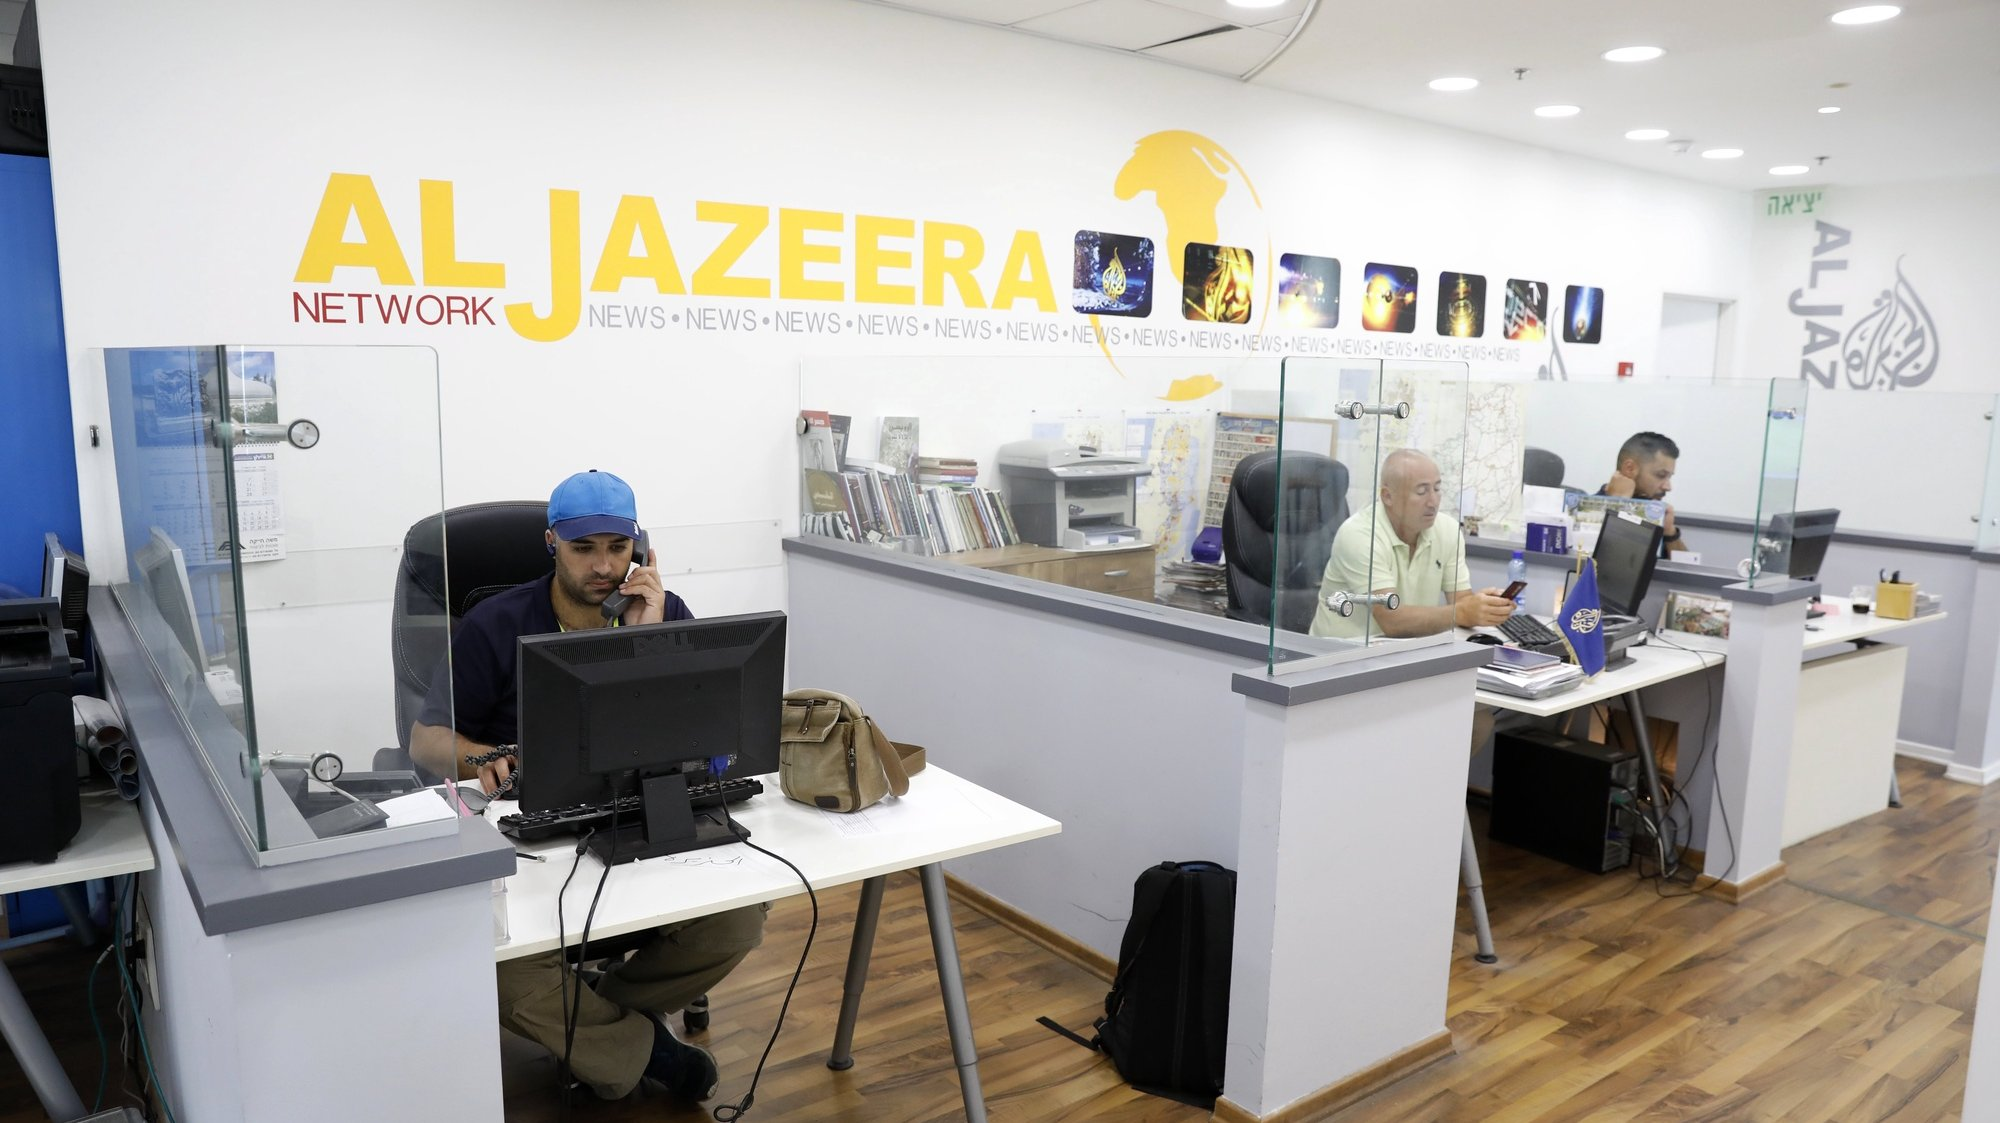 epa06130163 Employees of Al Jazeera satellite channel work at their Jerusalem bureau, in Israel, 07 August 2017. Al Jazeera on 06 August 2017 reported that Israel's communication minister Ayoub Kara at a press conference had said he had made a request to cancel the credentials of Al Jazeera journalists and shut down the its offices in Jerusalem. Israeli media reported 14 June 2017 that Israeli Prime Minister Benjamin Netanyahu then had decided to consider the closure of the station's offices.  EPA/ABIR SULTAN